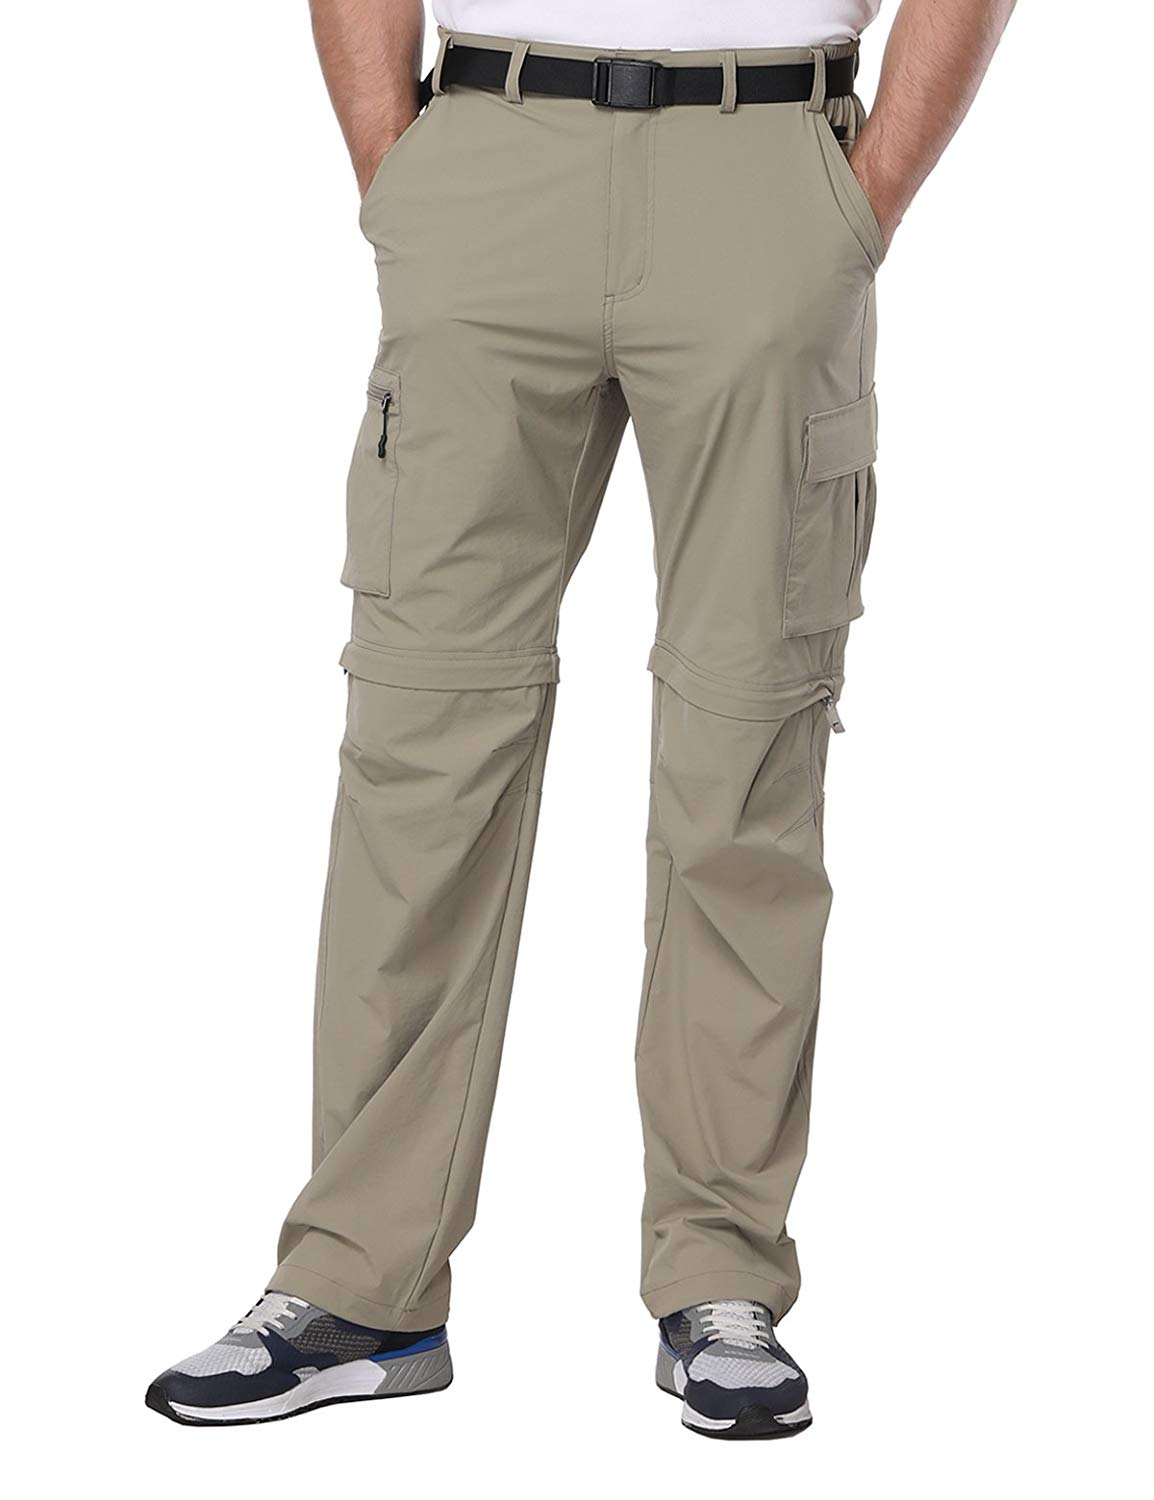 best hiking pants for men - MIER